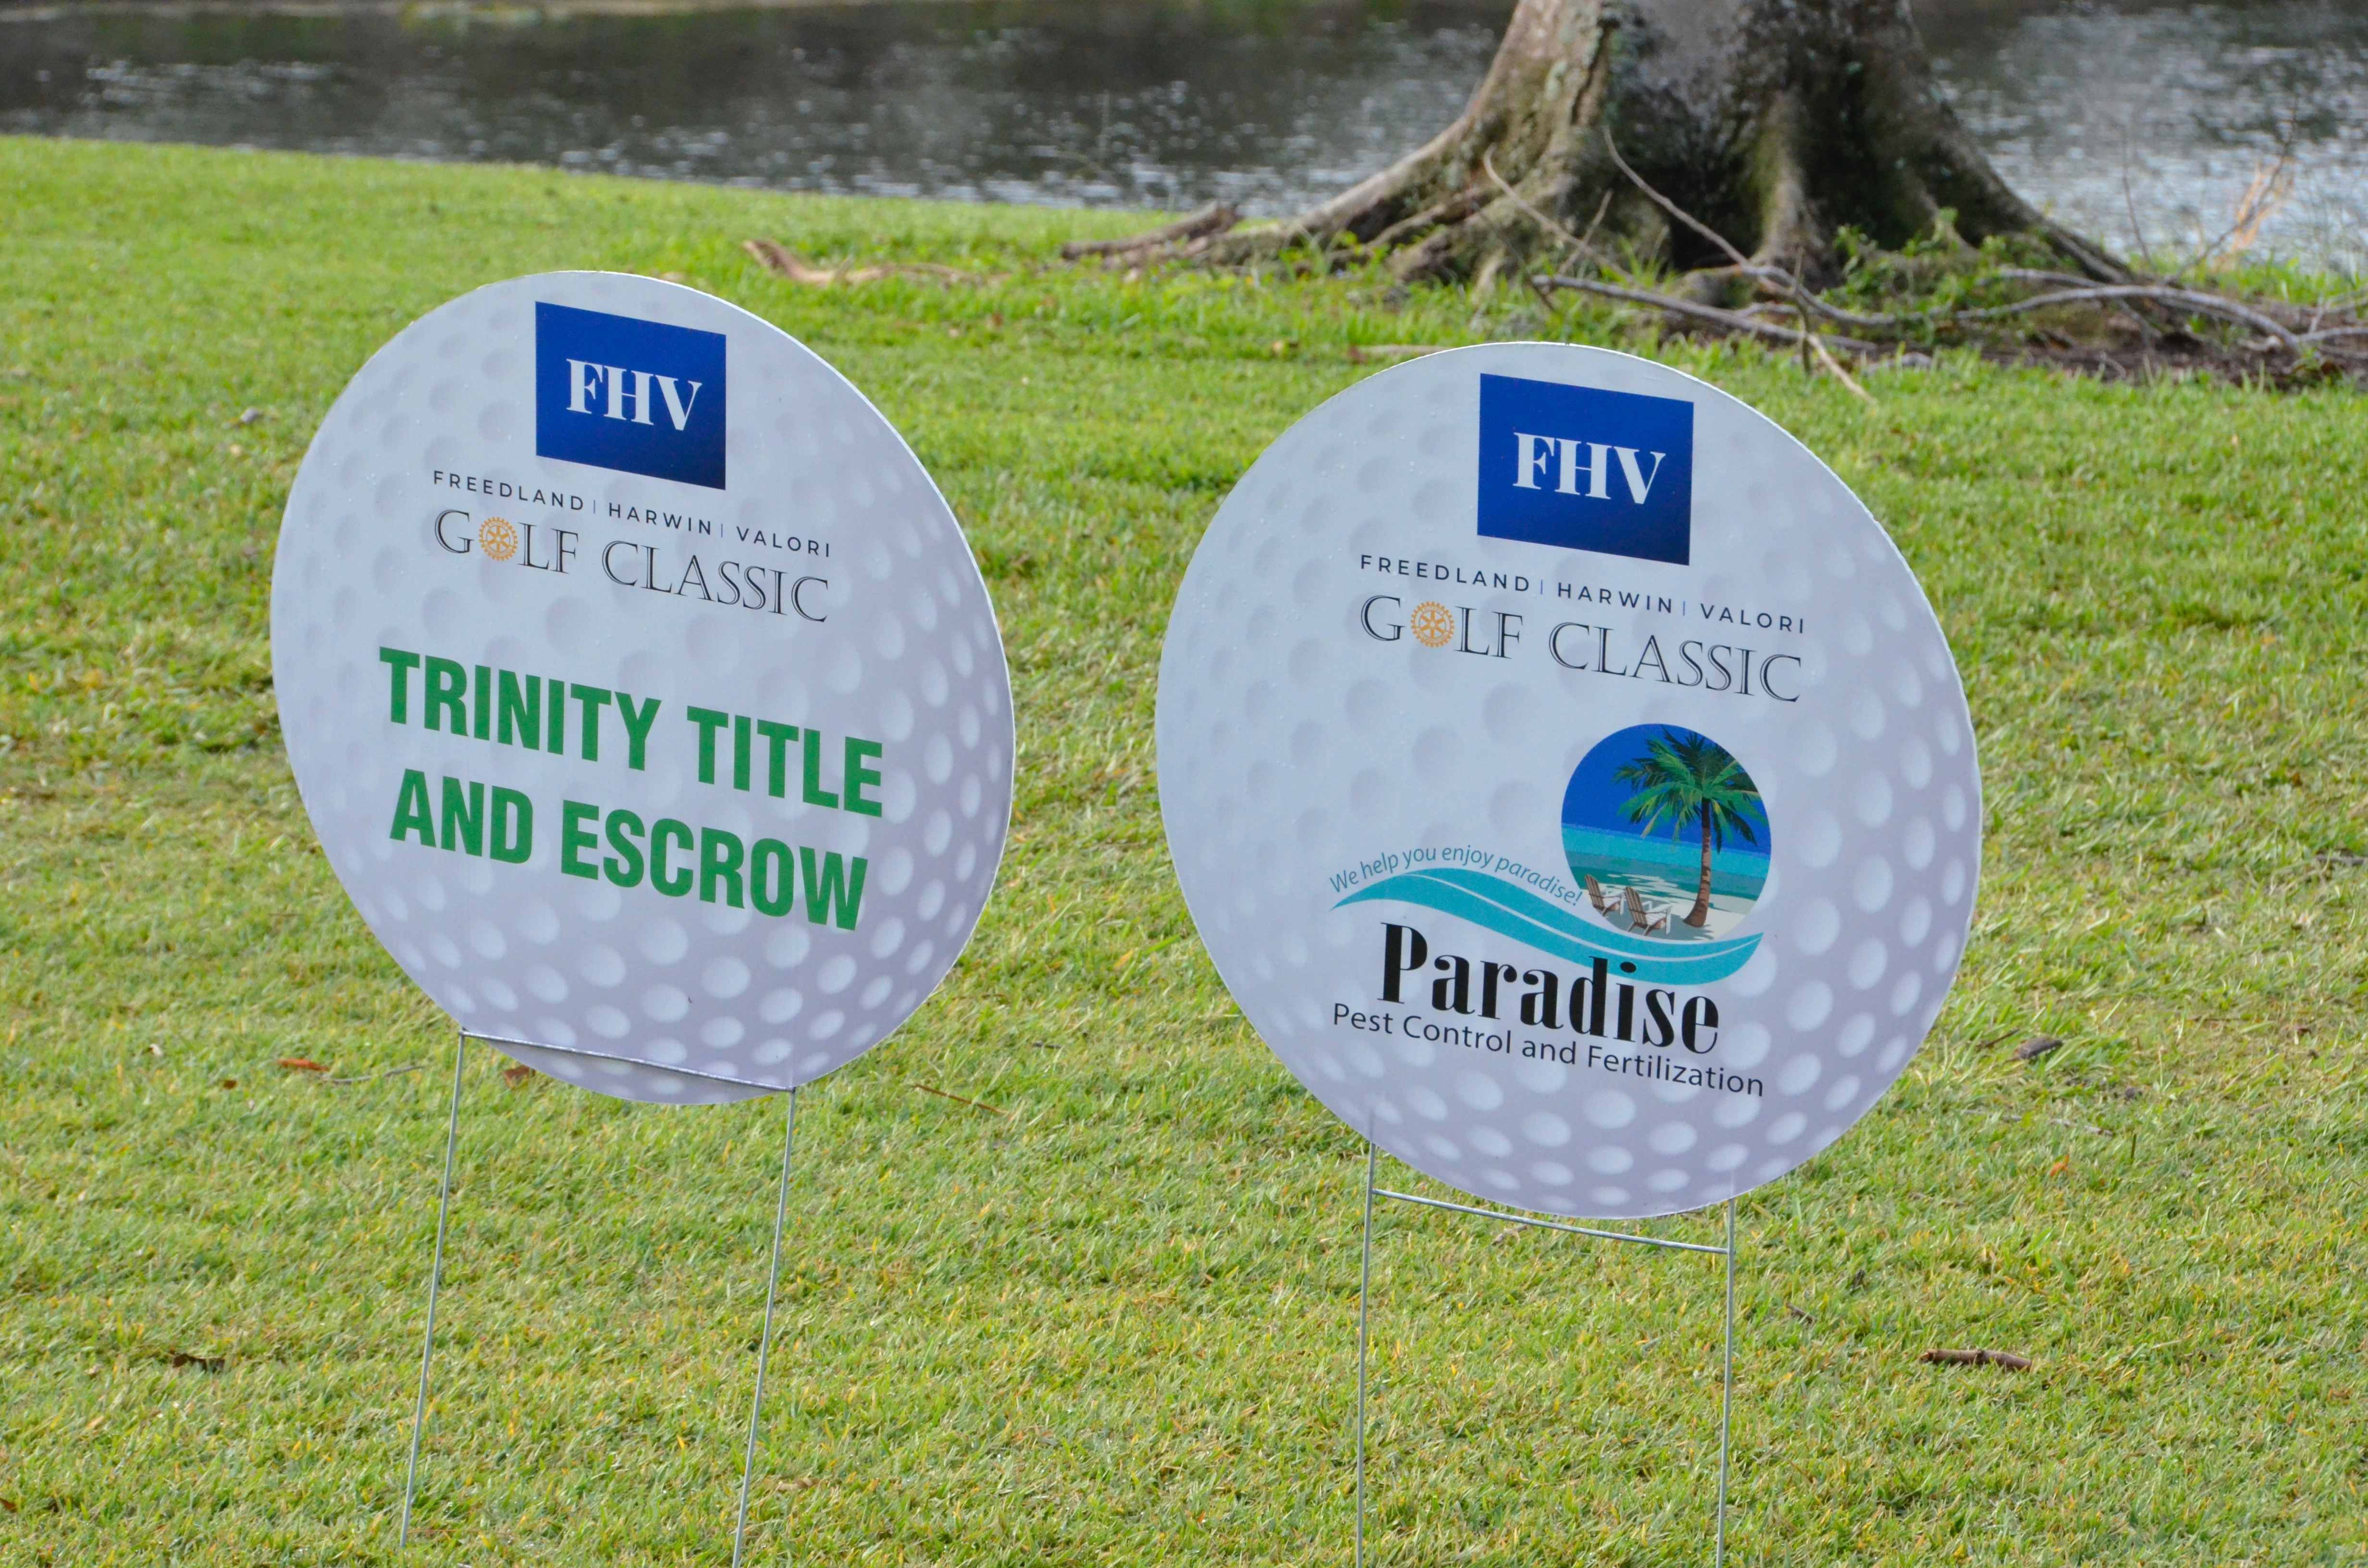 33rd Annual Rotary Golf Classic Sponsored by FHVLEGAL.COM gallery image #12